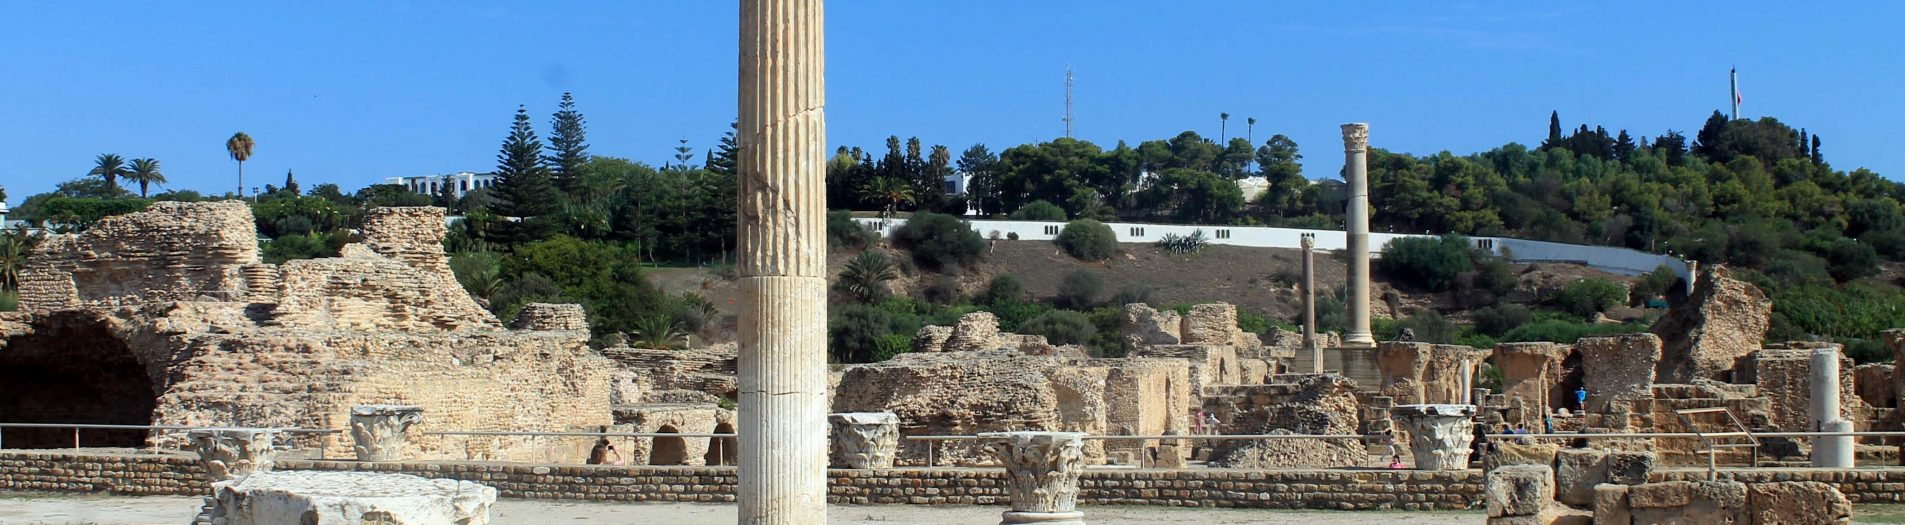 Les thermes d'Antonin à Carthage